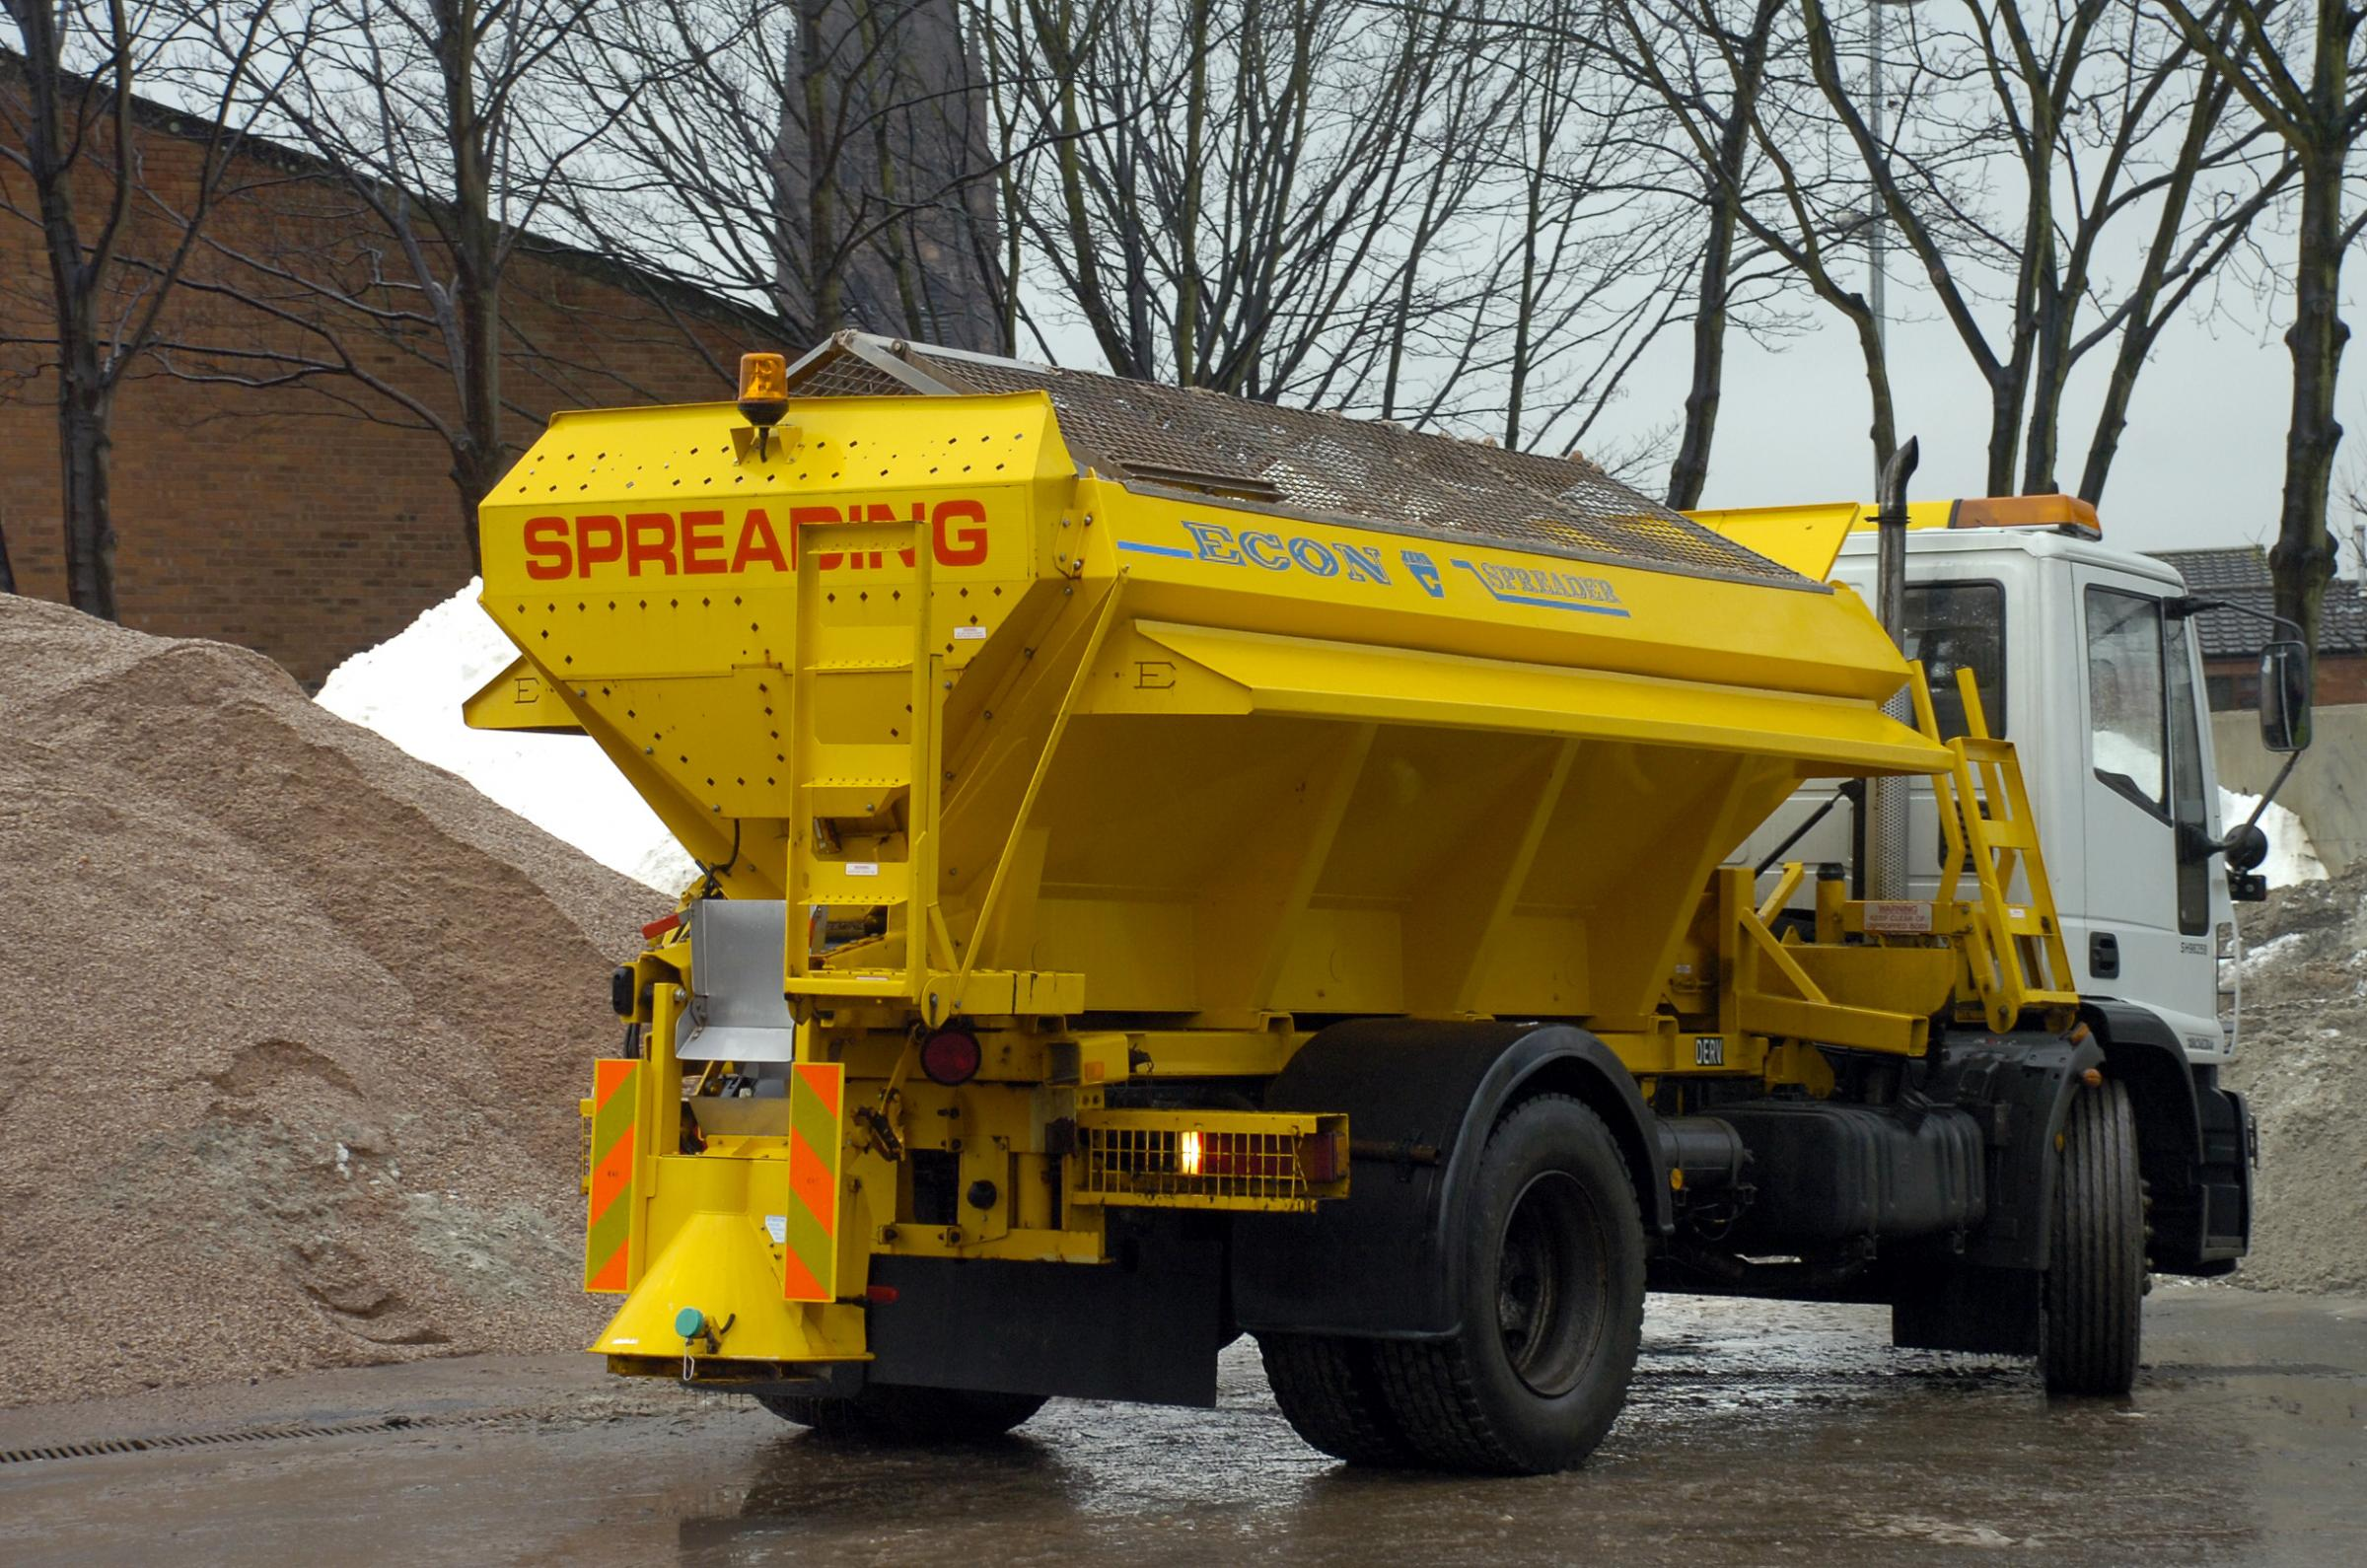 Gritters to hit the road as temperatures predicted to fall to -4c